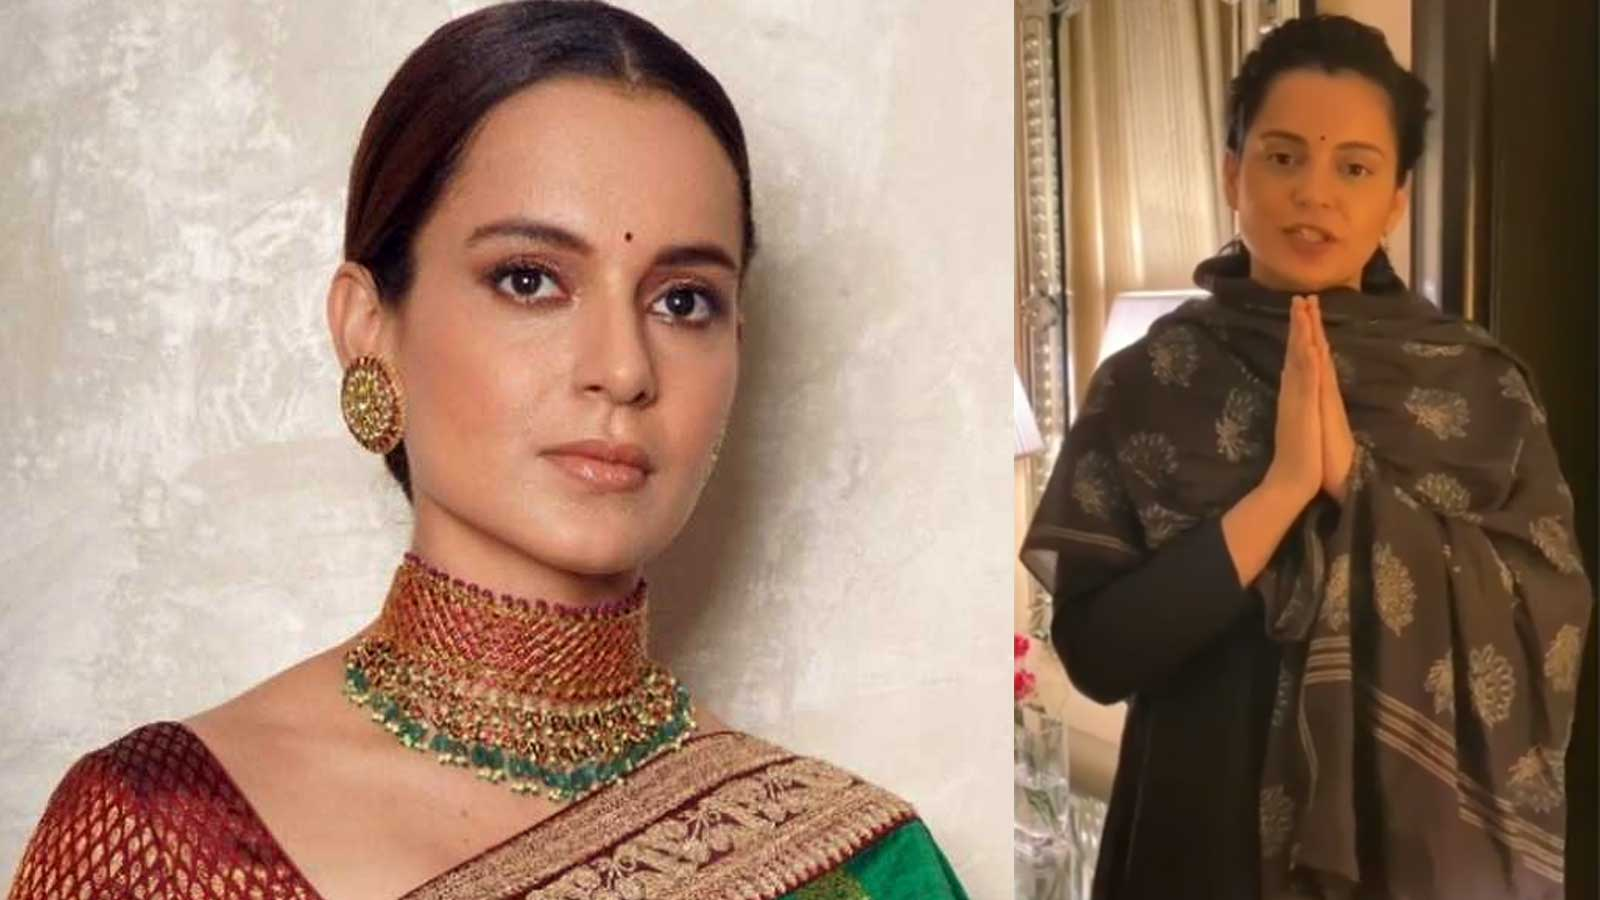 kangana-ranaut-expresses-her-gratitude-towards-government-of-india-for-honouring-her-with-padma-shri